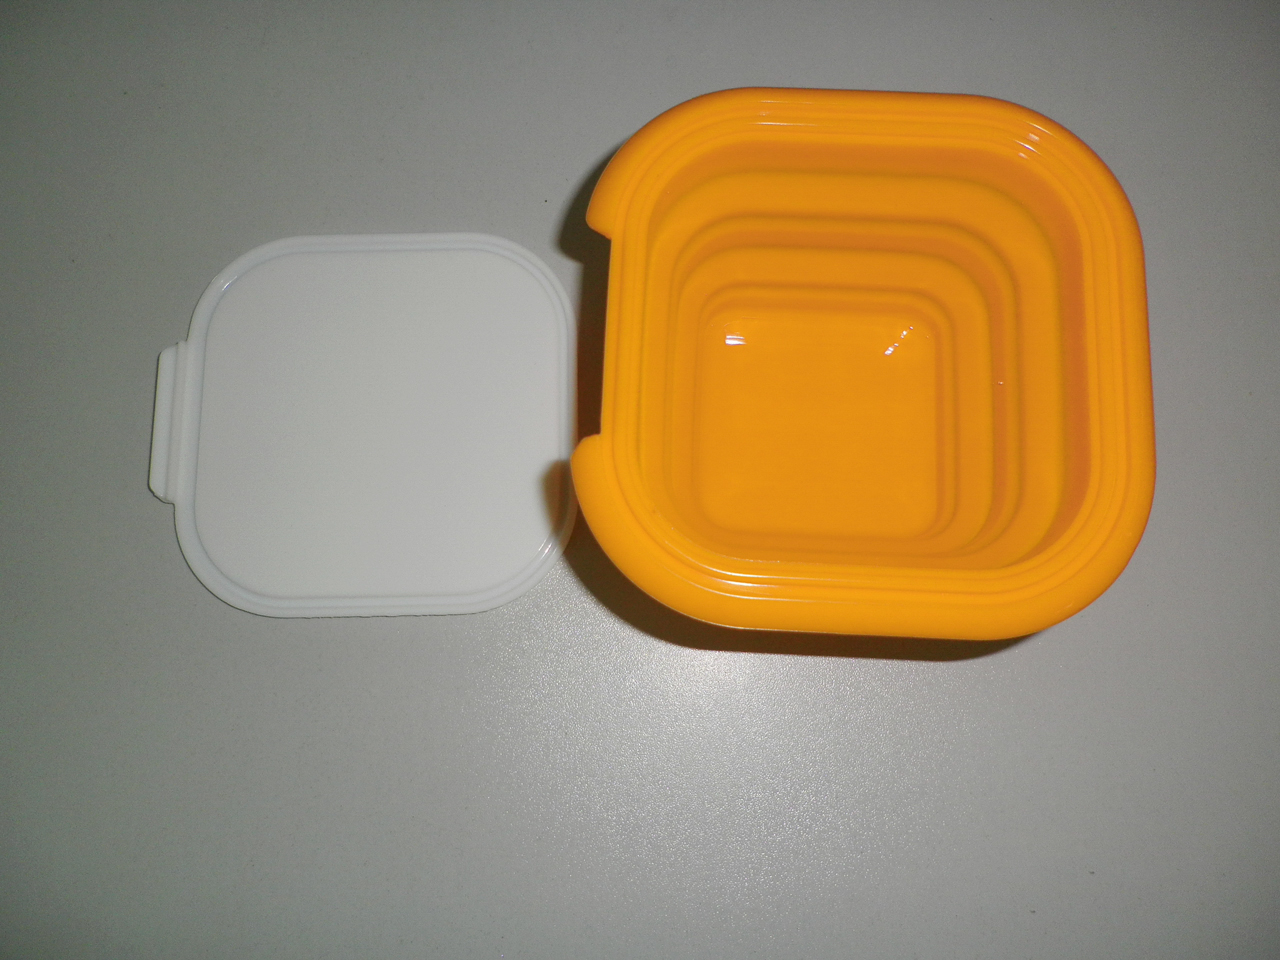 http://www.refinehksilicone.cn/data/images/product/20180418101327_298.jpg